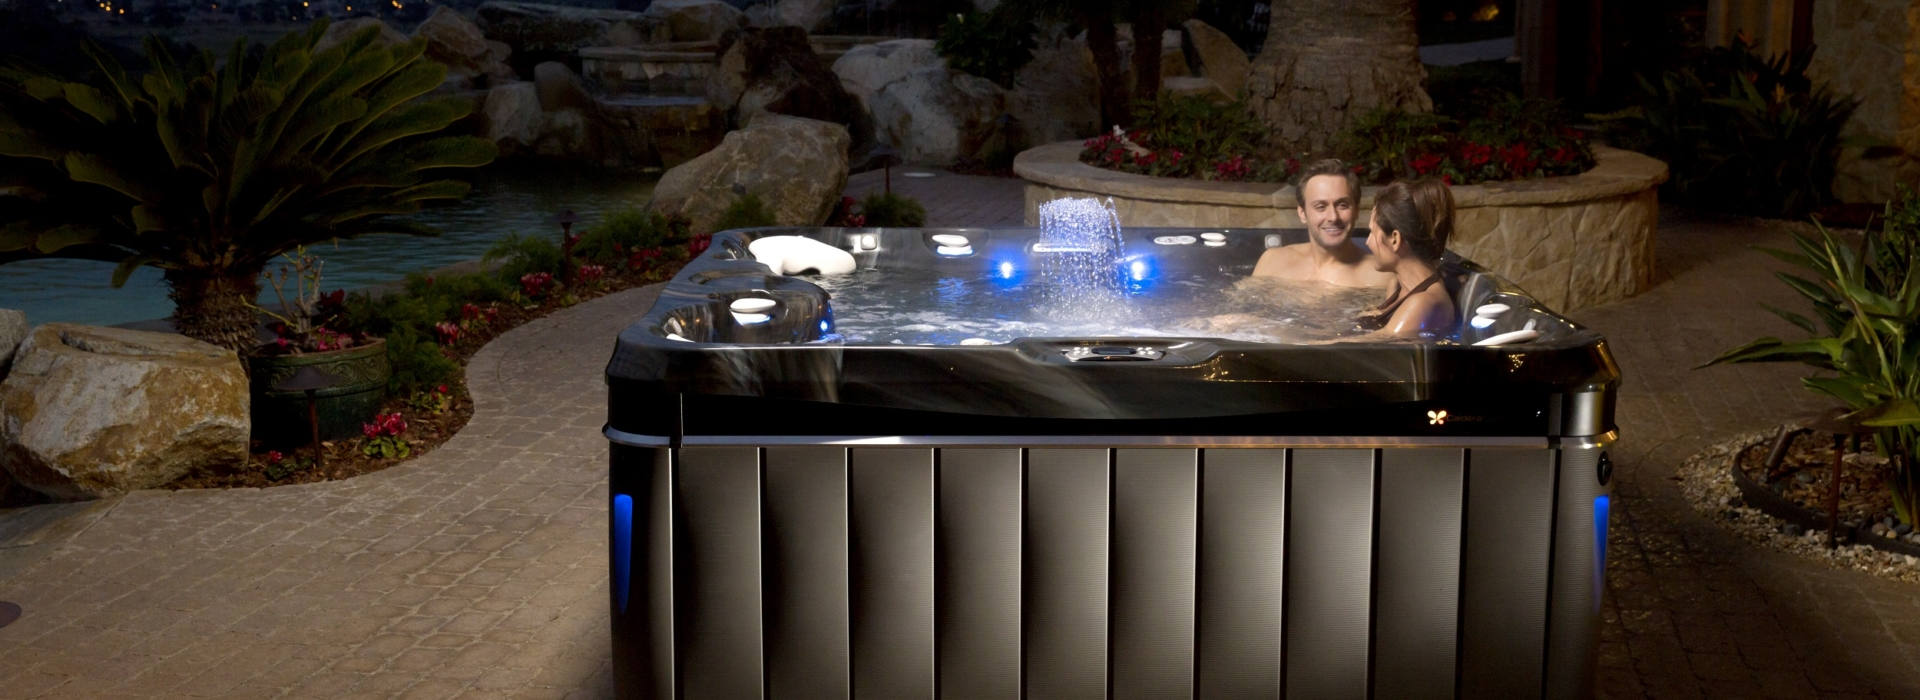 tub dealers me swim and tubs hydropool accessories near scss hot spas